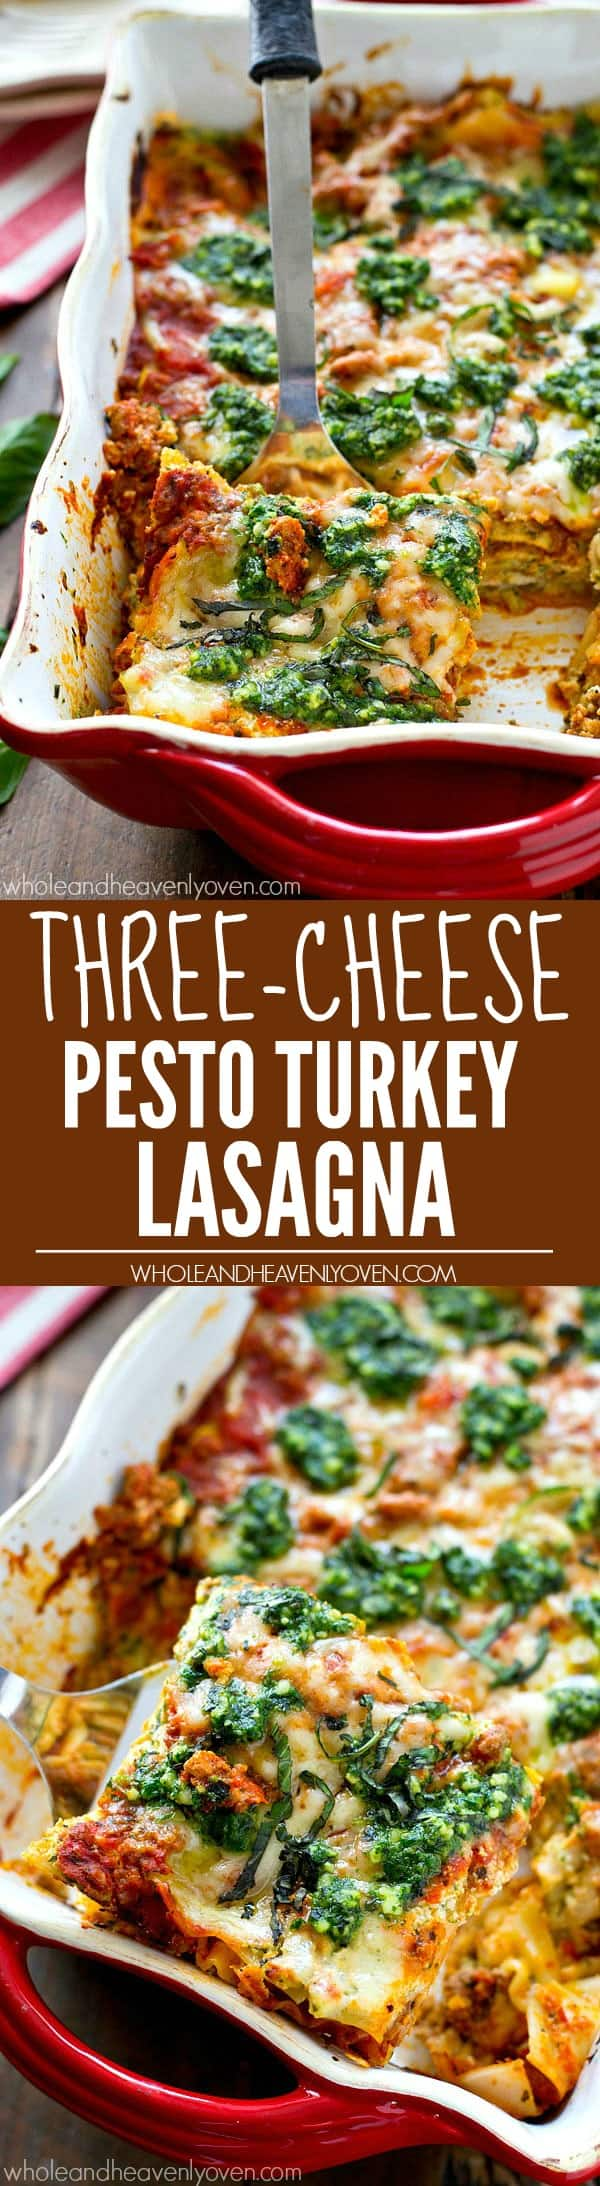 This ultra-cheesy turkey lasagna is real-deal comfort food! Loaded with a triple-whammy of cheese, lots of flavorful pesto, and guaranteed to make those weeknight dinners awesome.